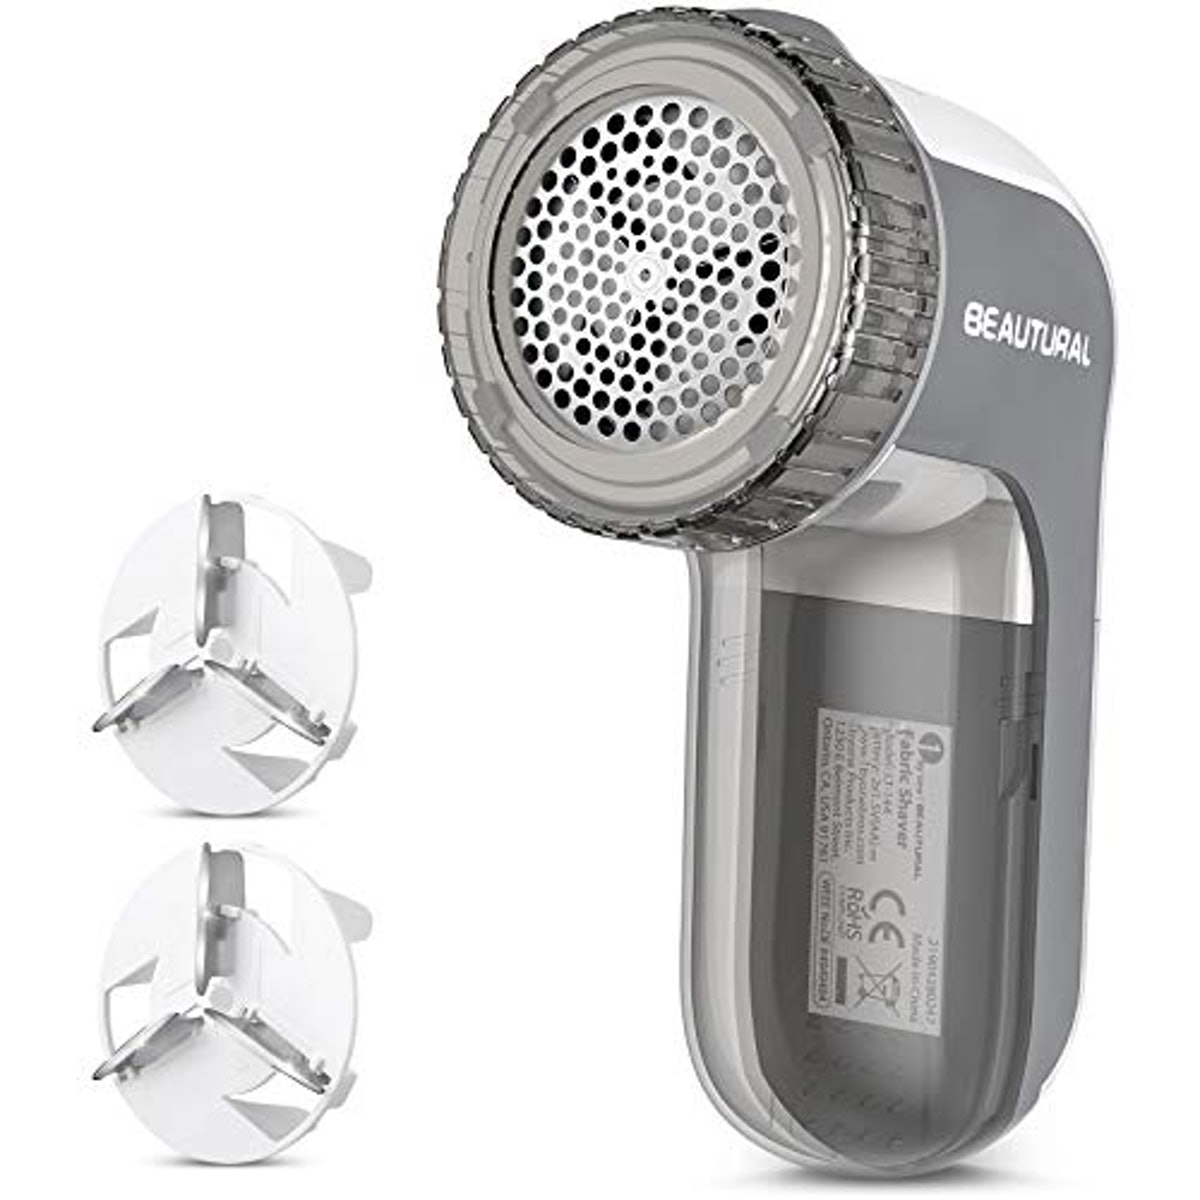 BEAUTURAL Fabric Shaver and Lint Remover